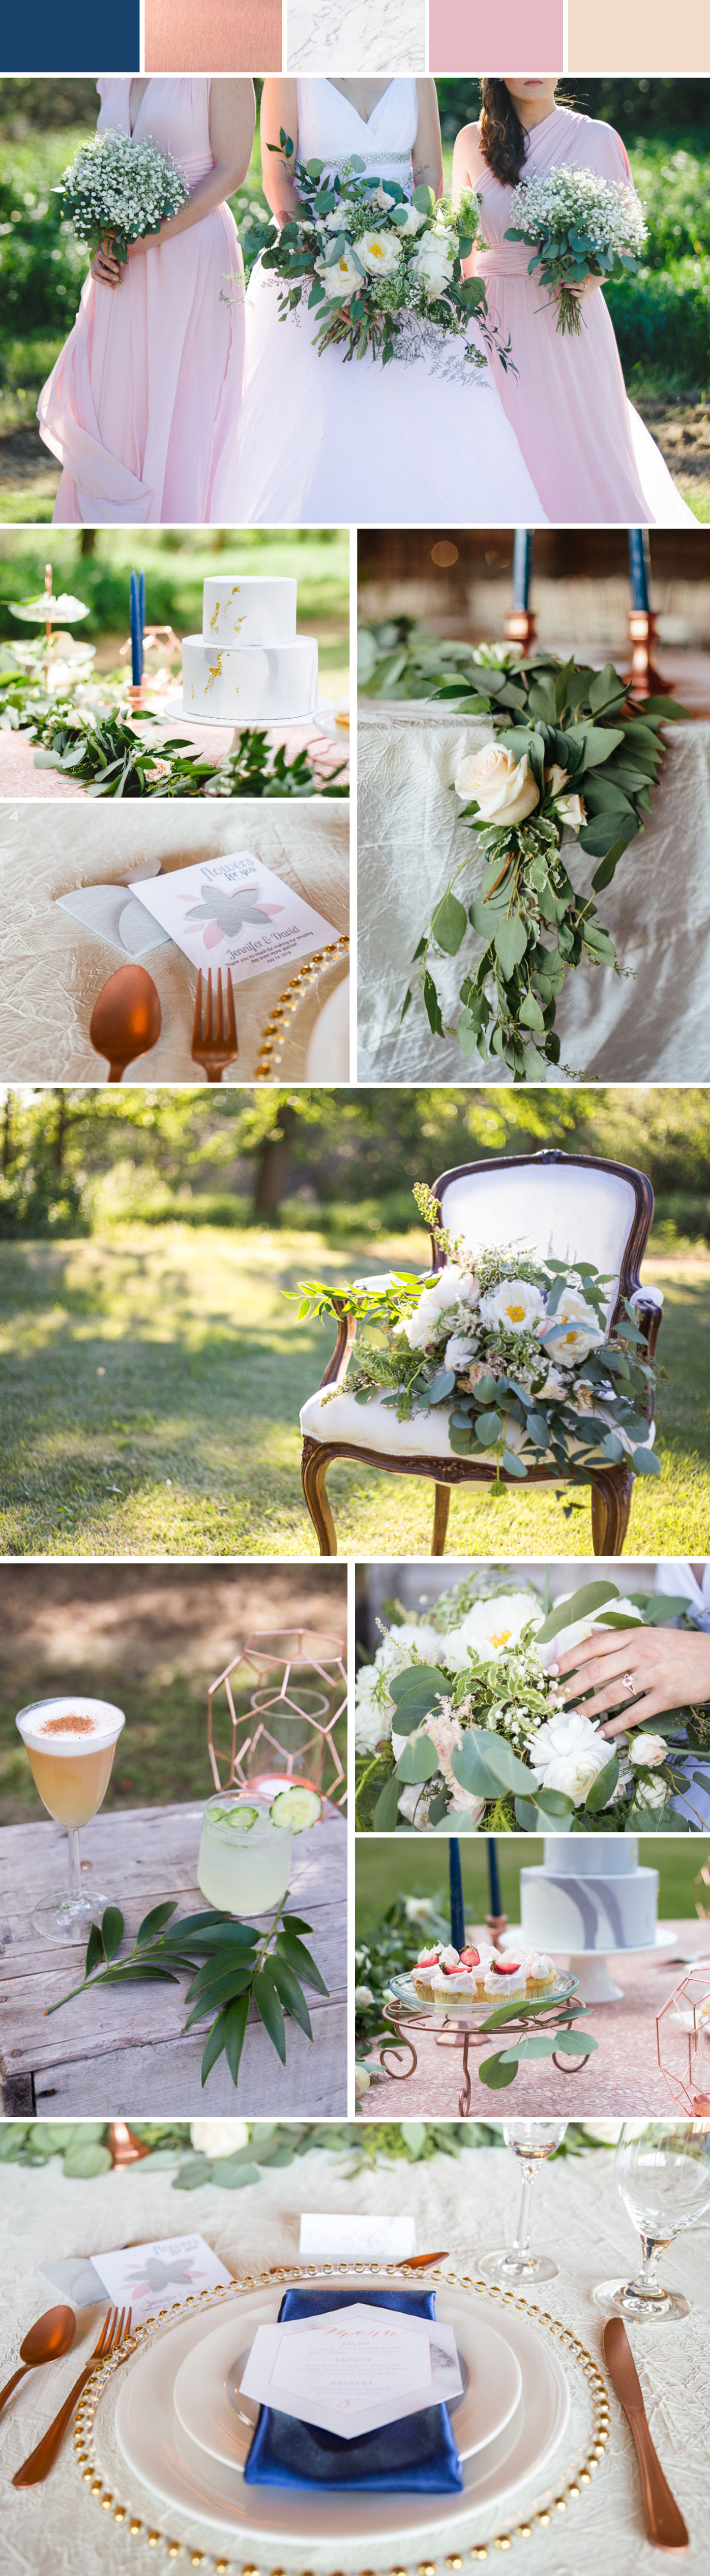 Check out the latest wedding inspiration featuring blush & navy with marble, rose gold & greenery accents.